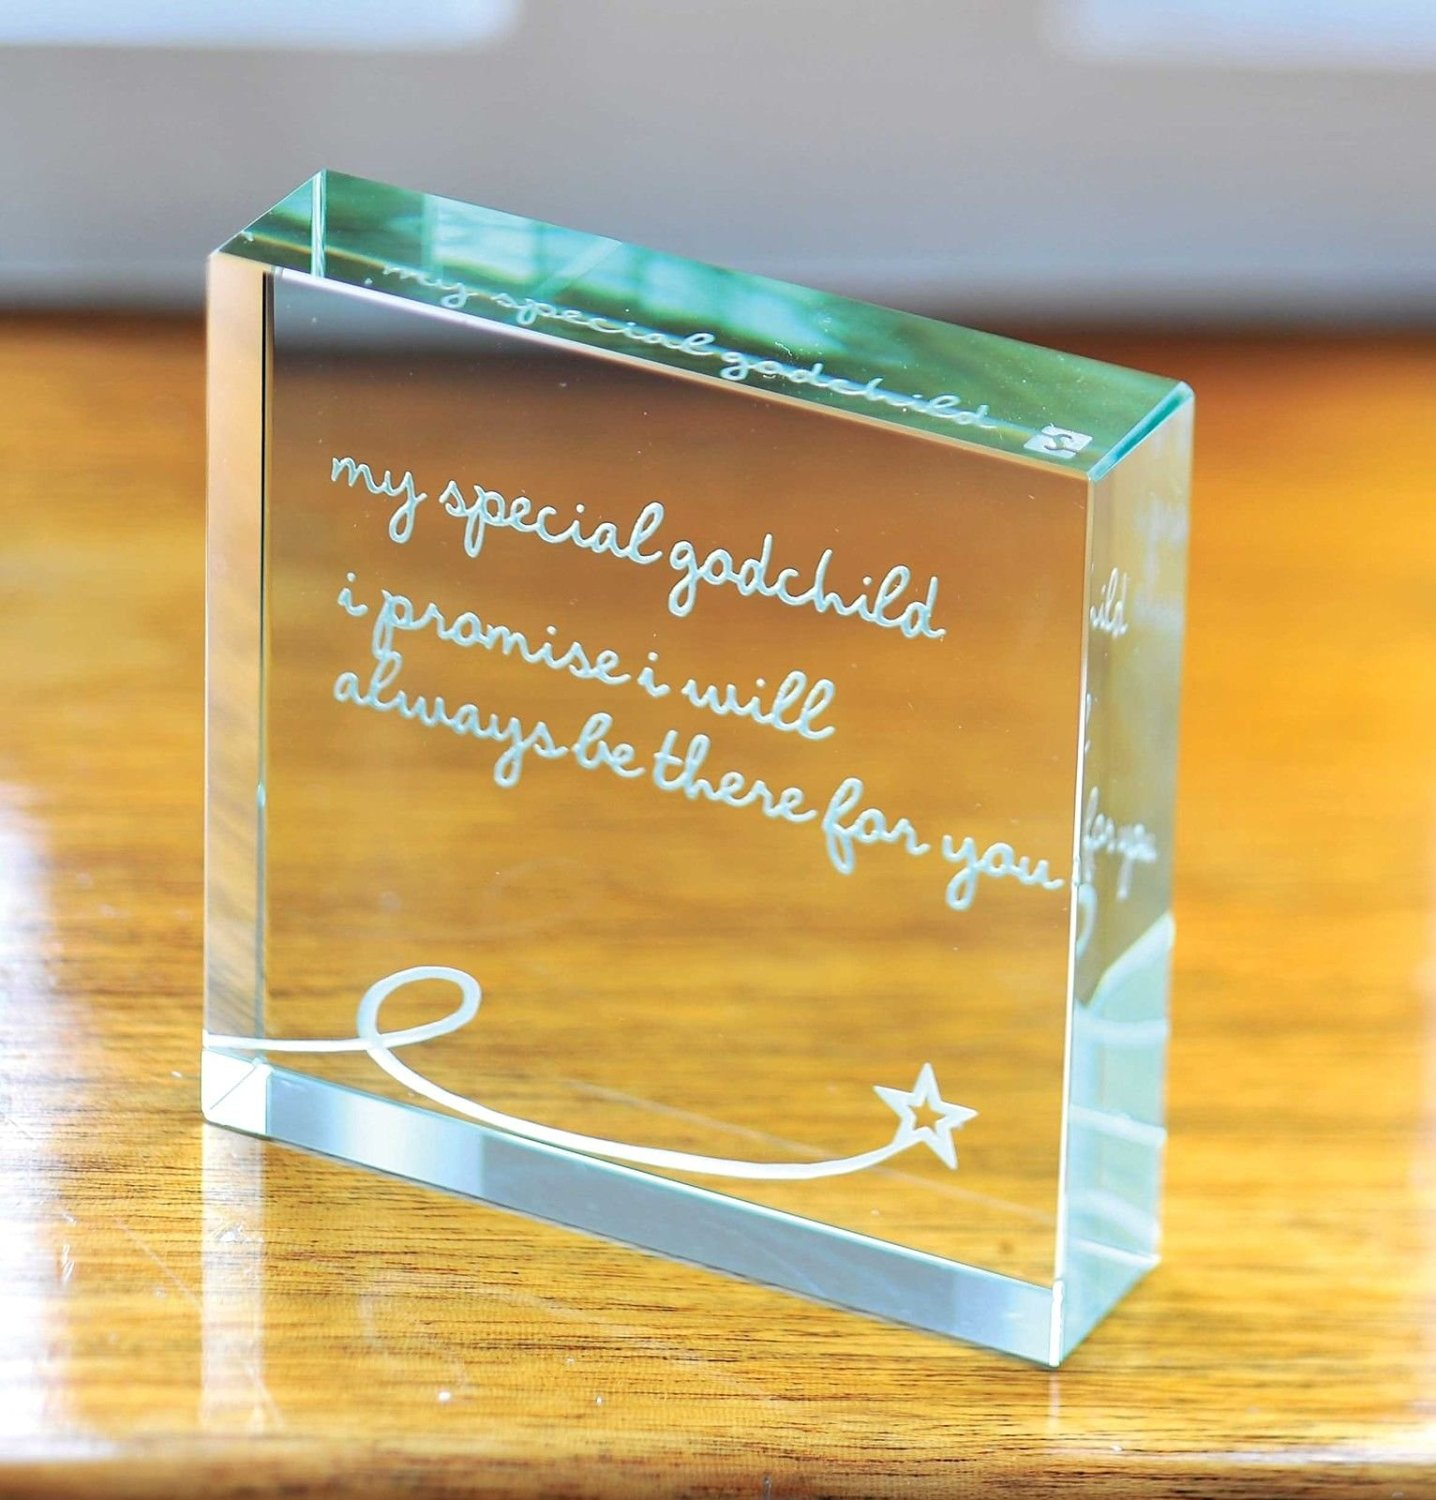 Christening Gift Ideas Spaceform Quality Paperweight Godchild Godparent